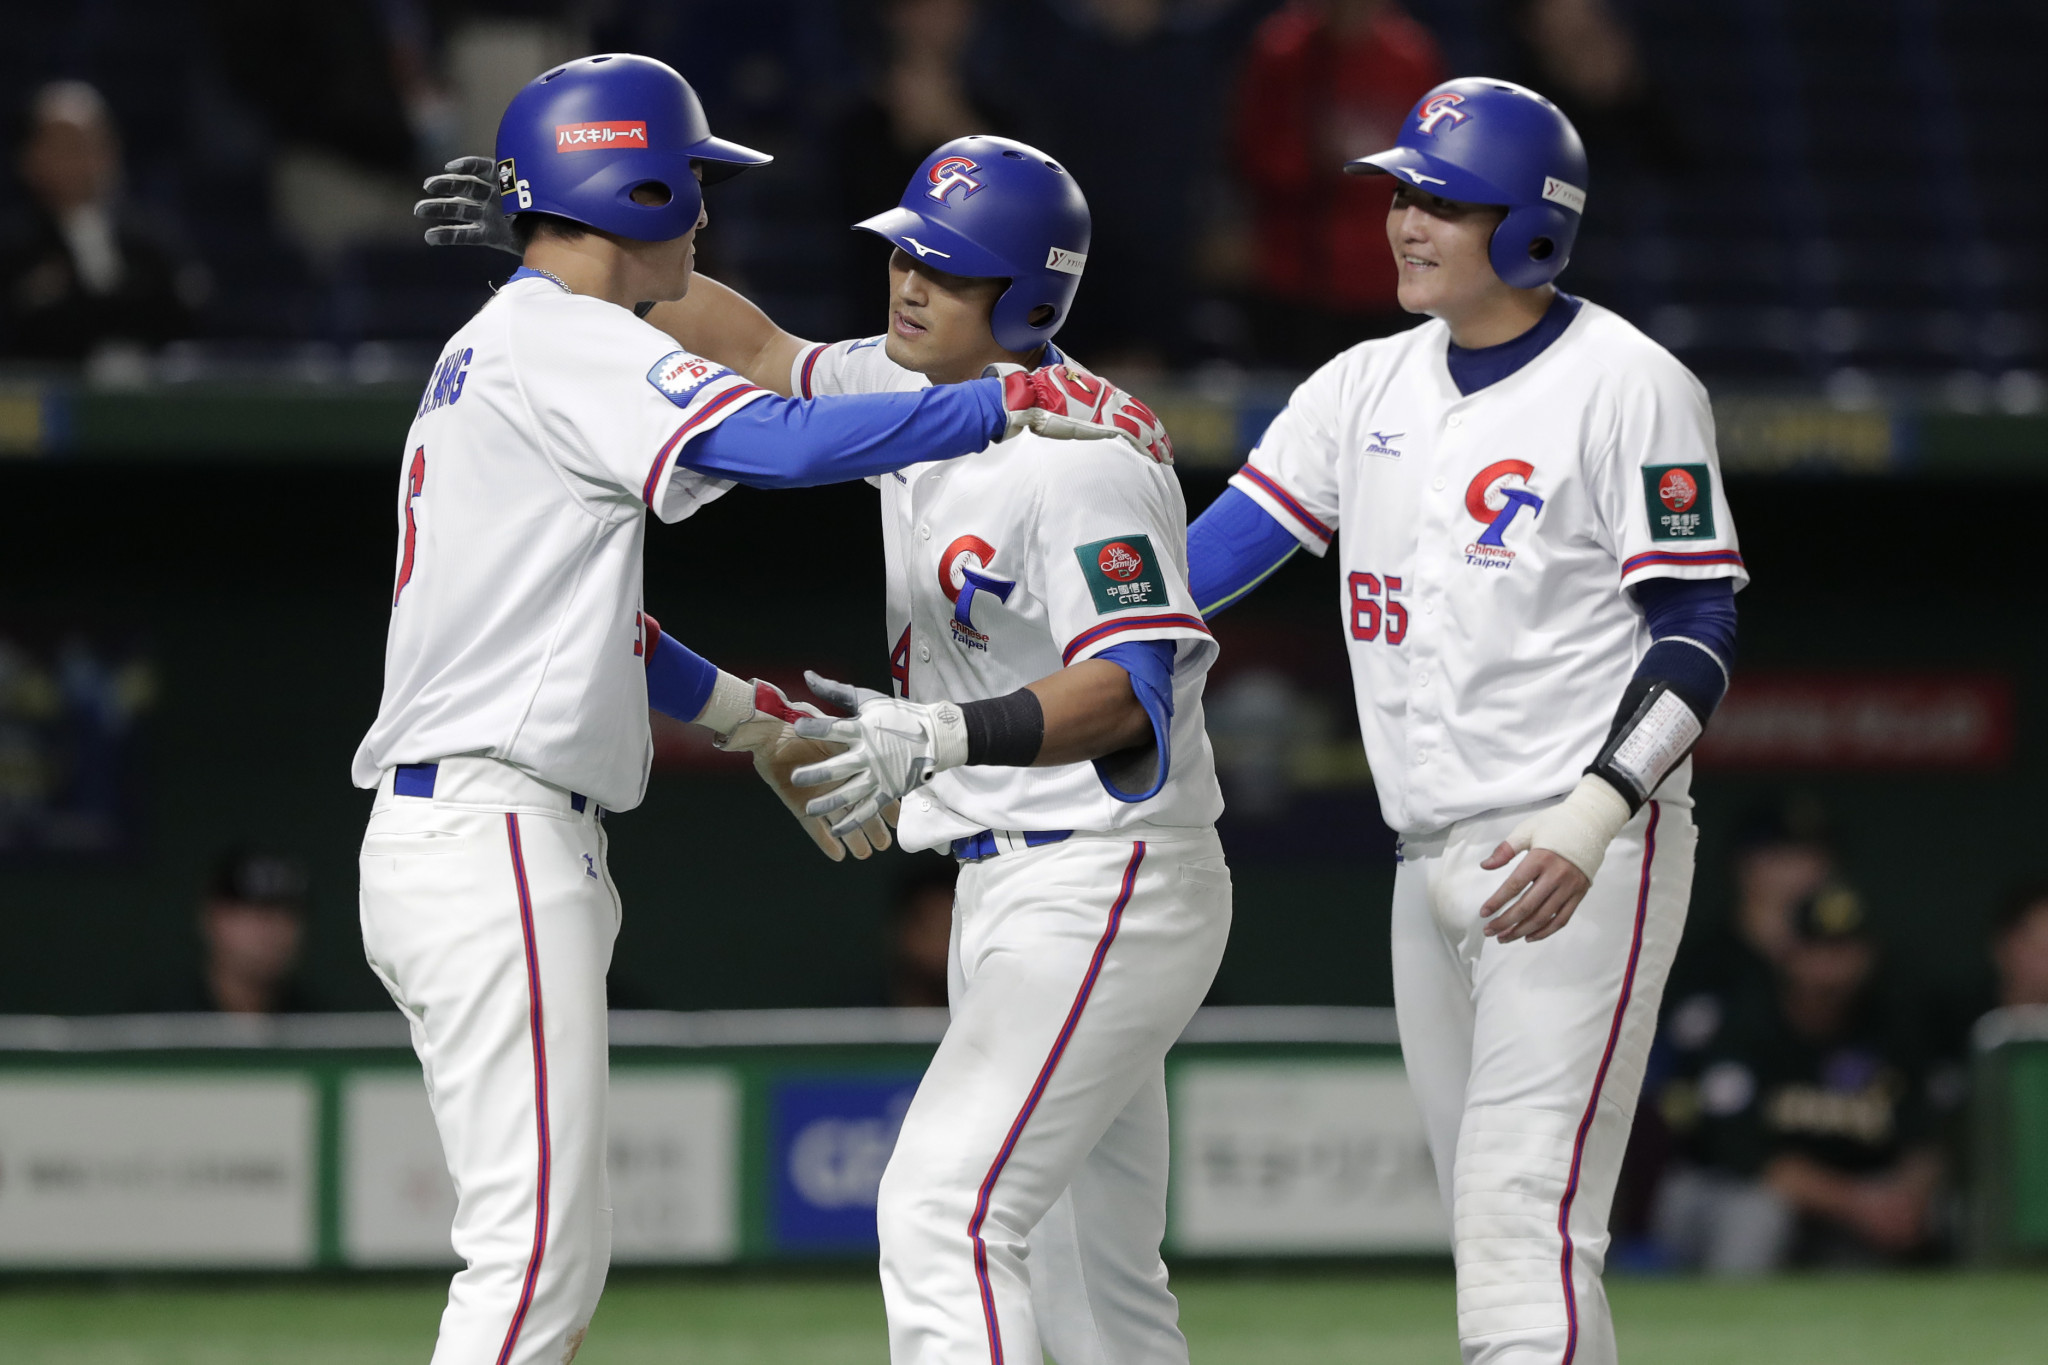 Chinese Taipei Baseball Association to host Asian Baseball Championships in December